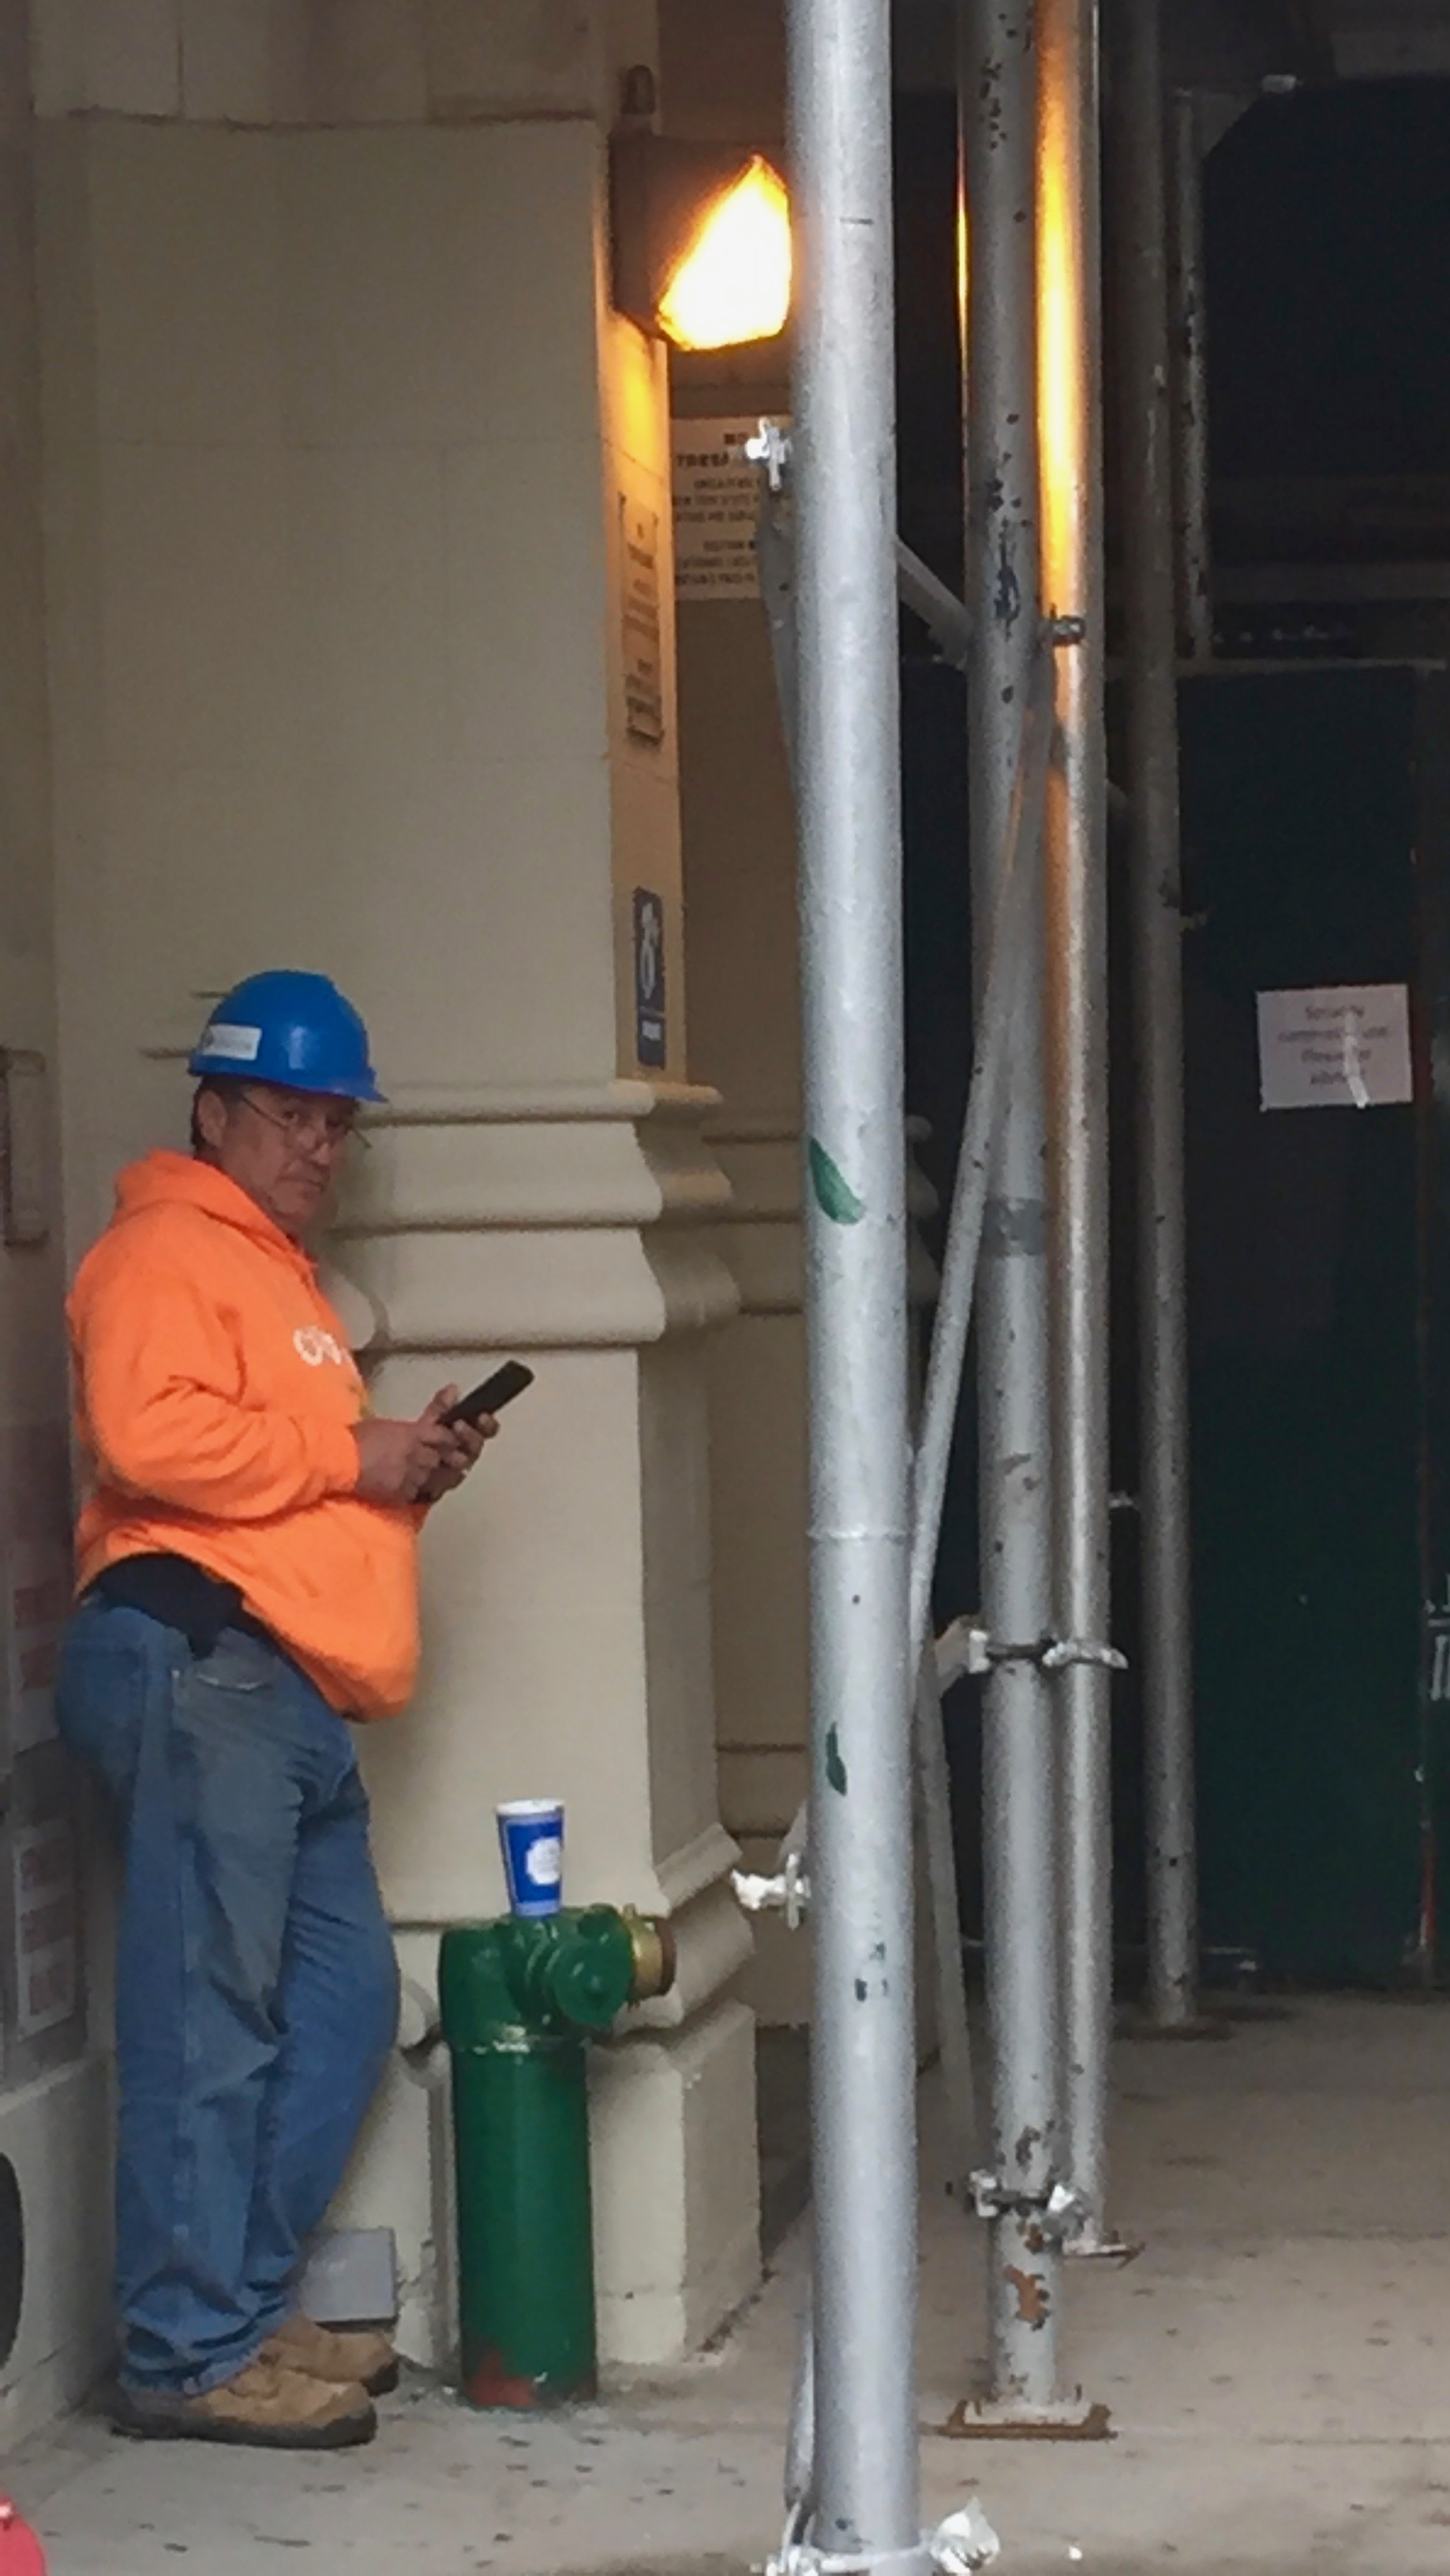 A Construction Foreman in the West Village checks on suppliers